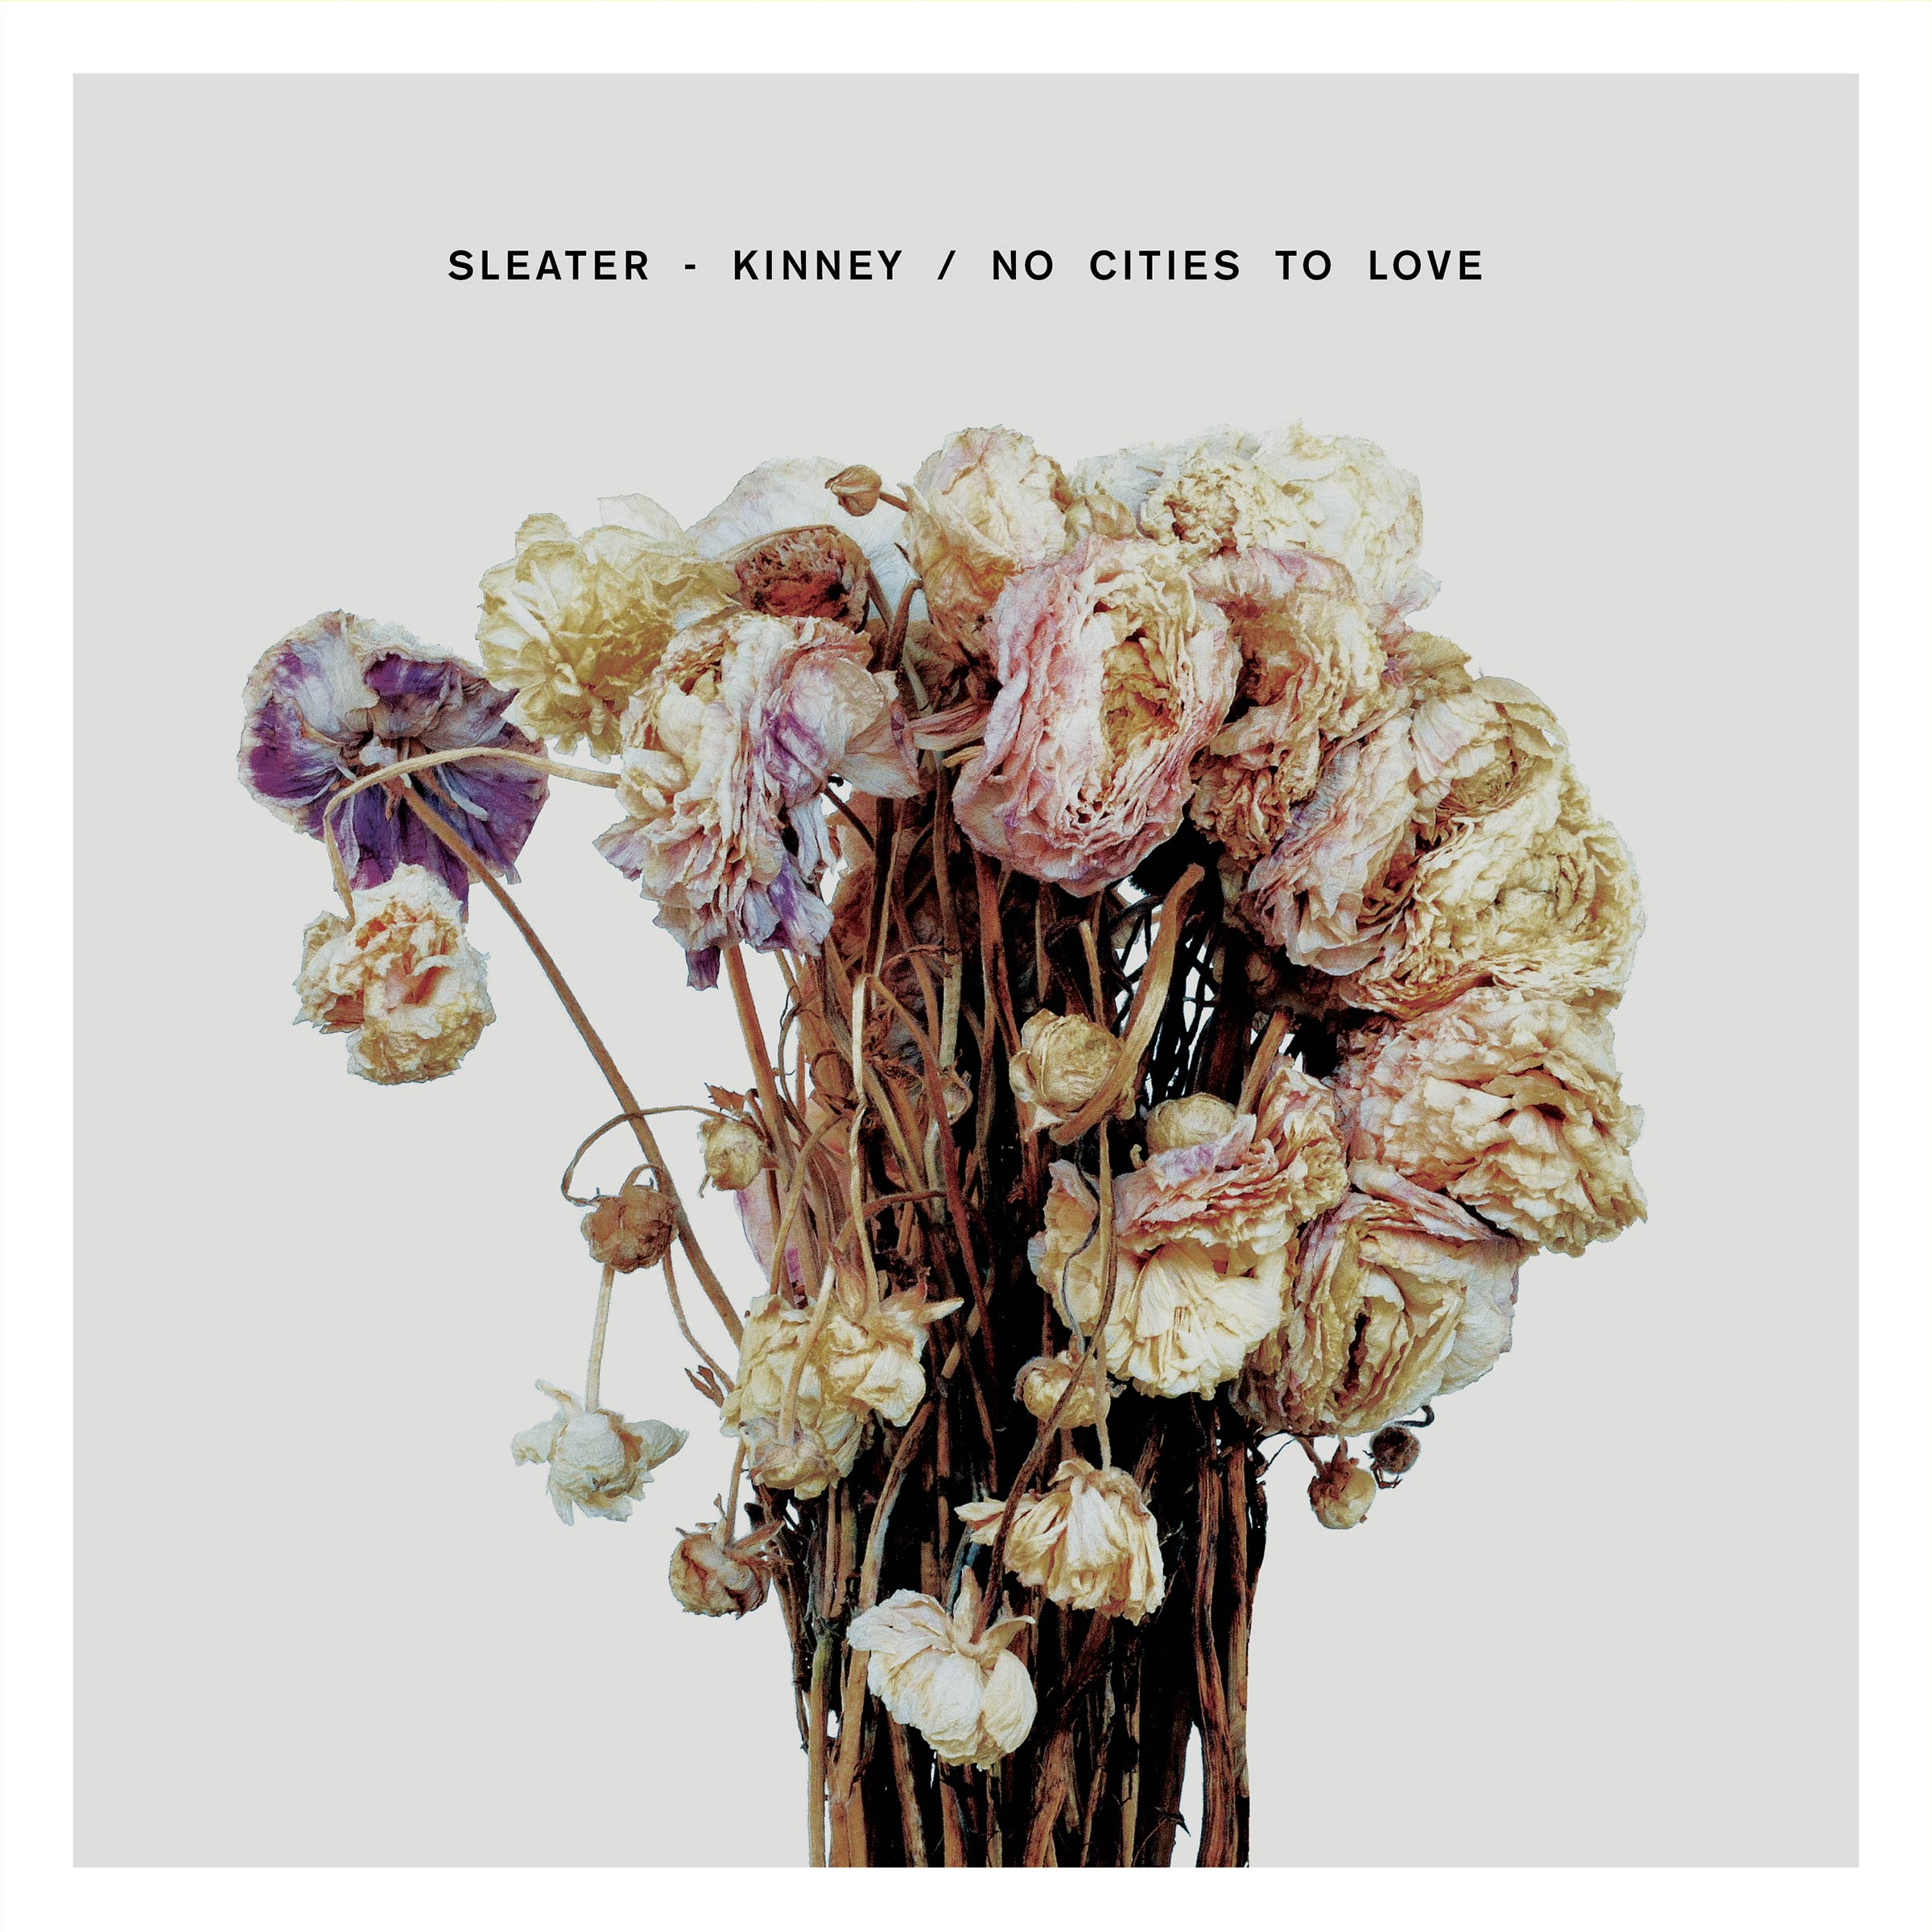 Best of Albums 2015 - Sleater-Kinney, No Cities to Love